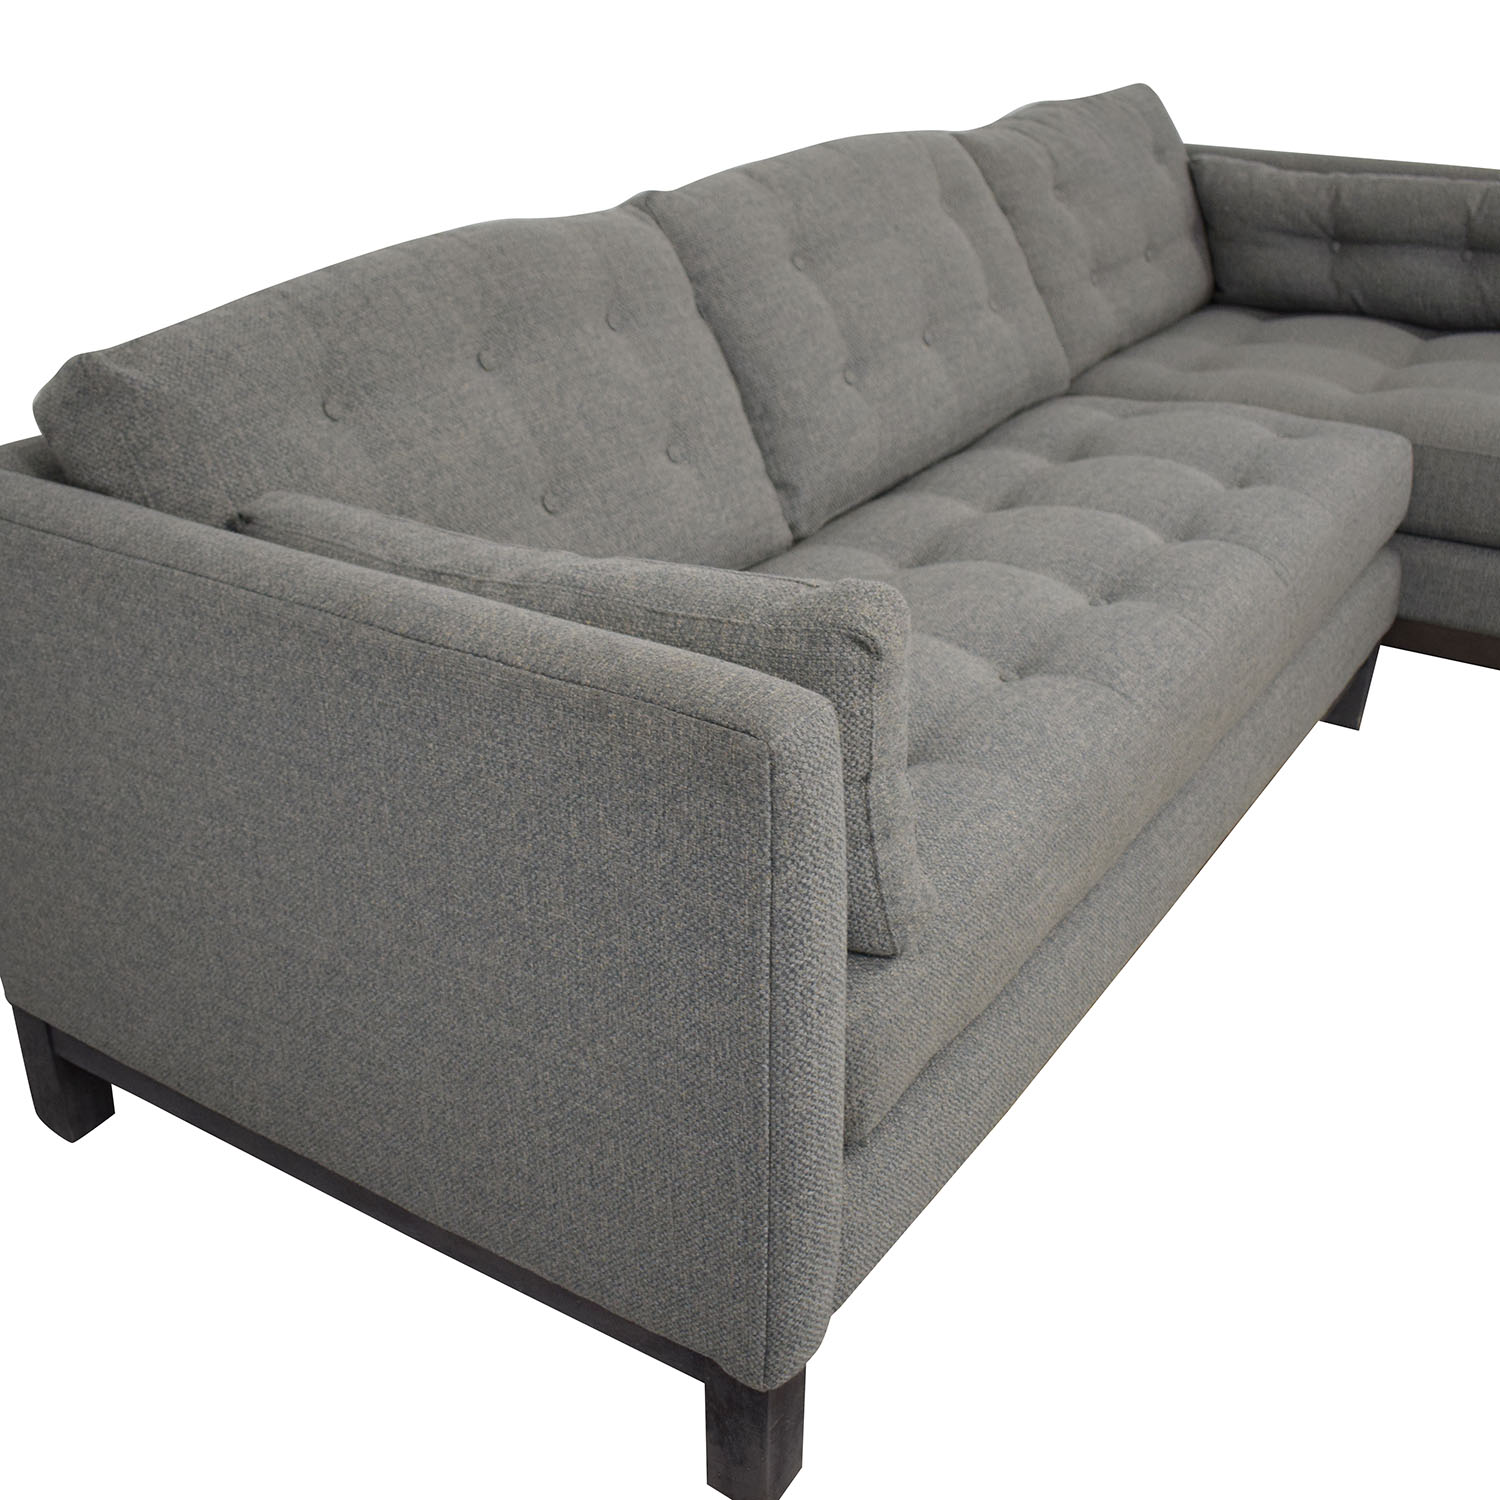 shop McCreary Modern Sectional Chaise Sofa McCreary Modern Sofas